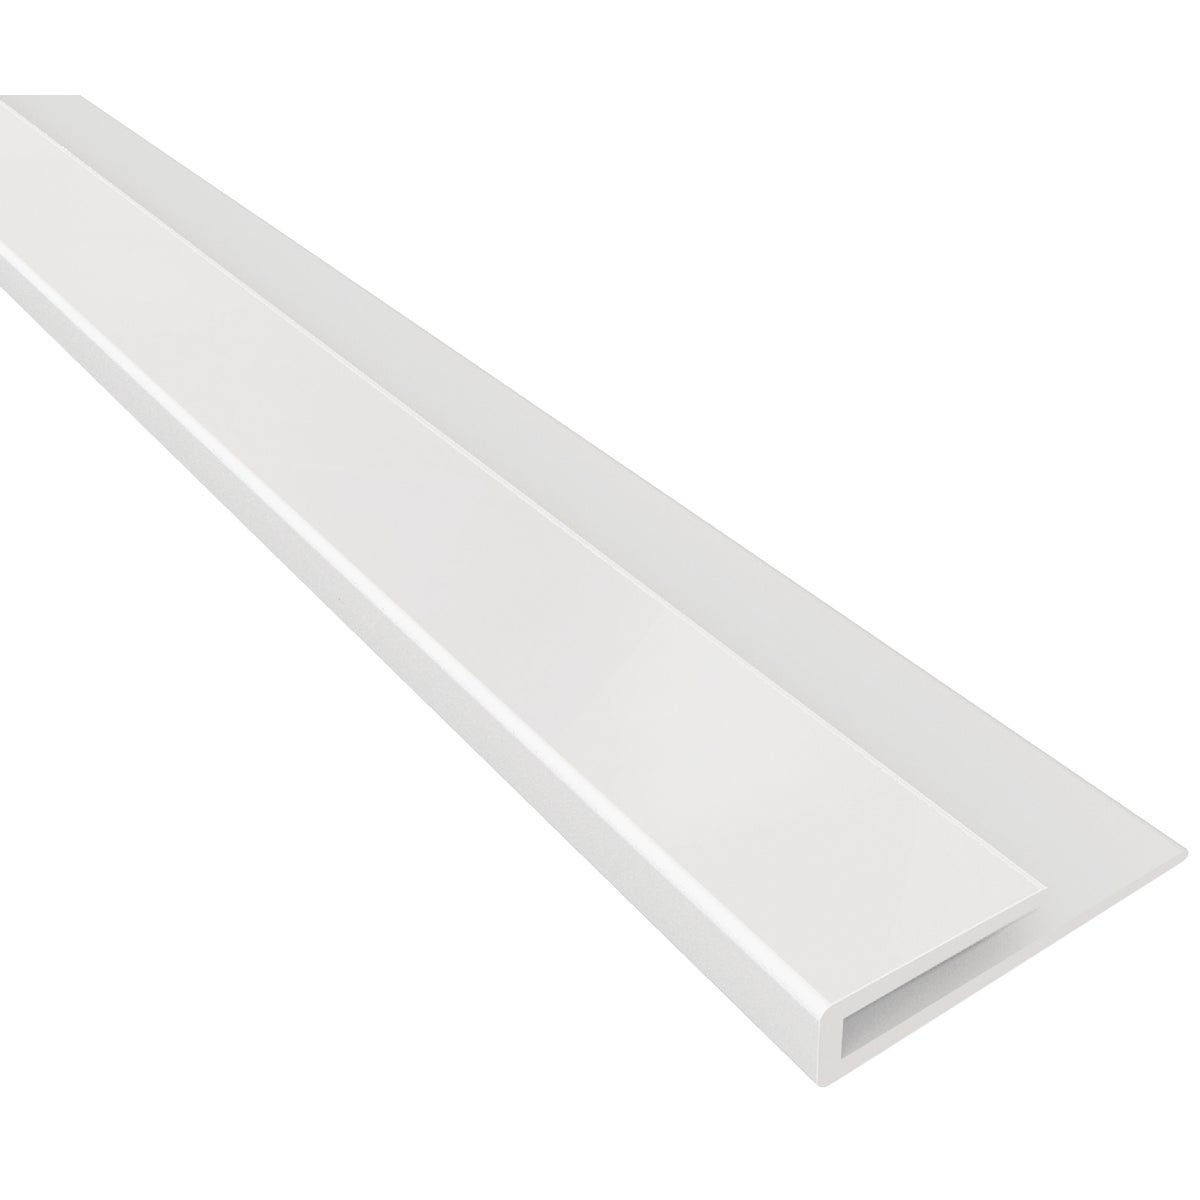 "1/8""X8' WHITE CAP - 057-008485 by Gossen Corp"